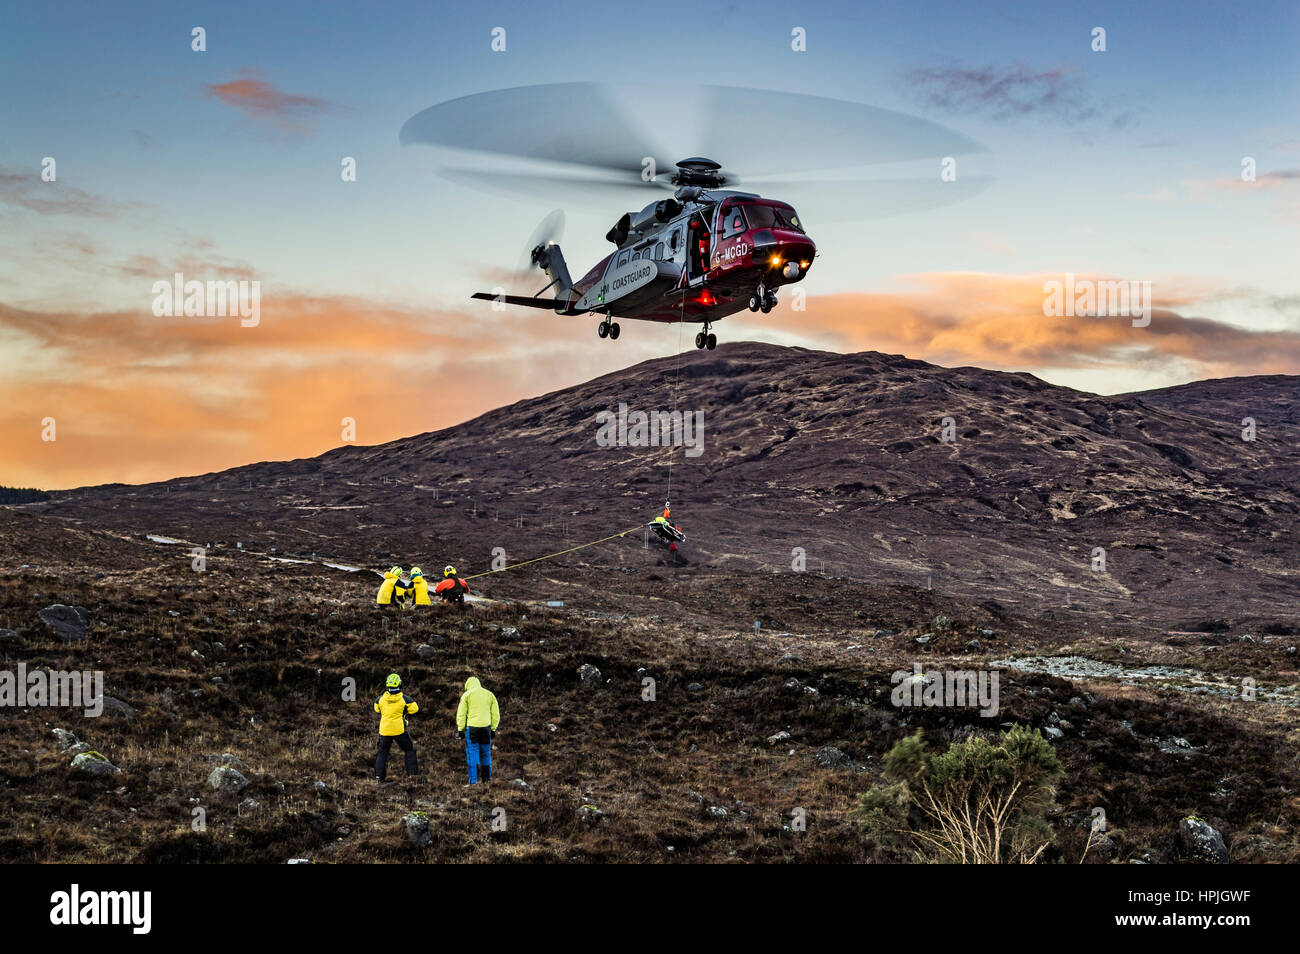 Coastguard helicopter, hovering in the air, on training exercise at Sligachan, Isle of Skye, Scotland. - Stock Image